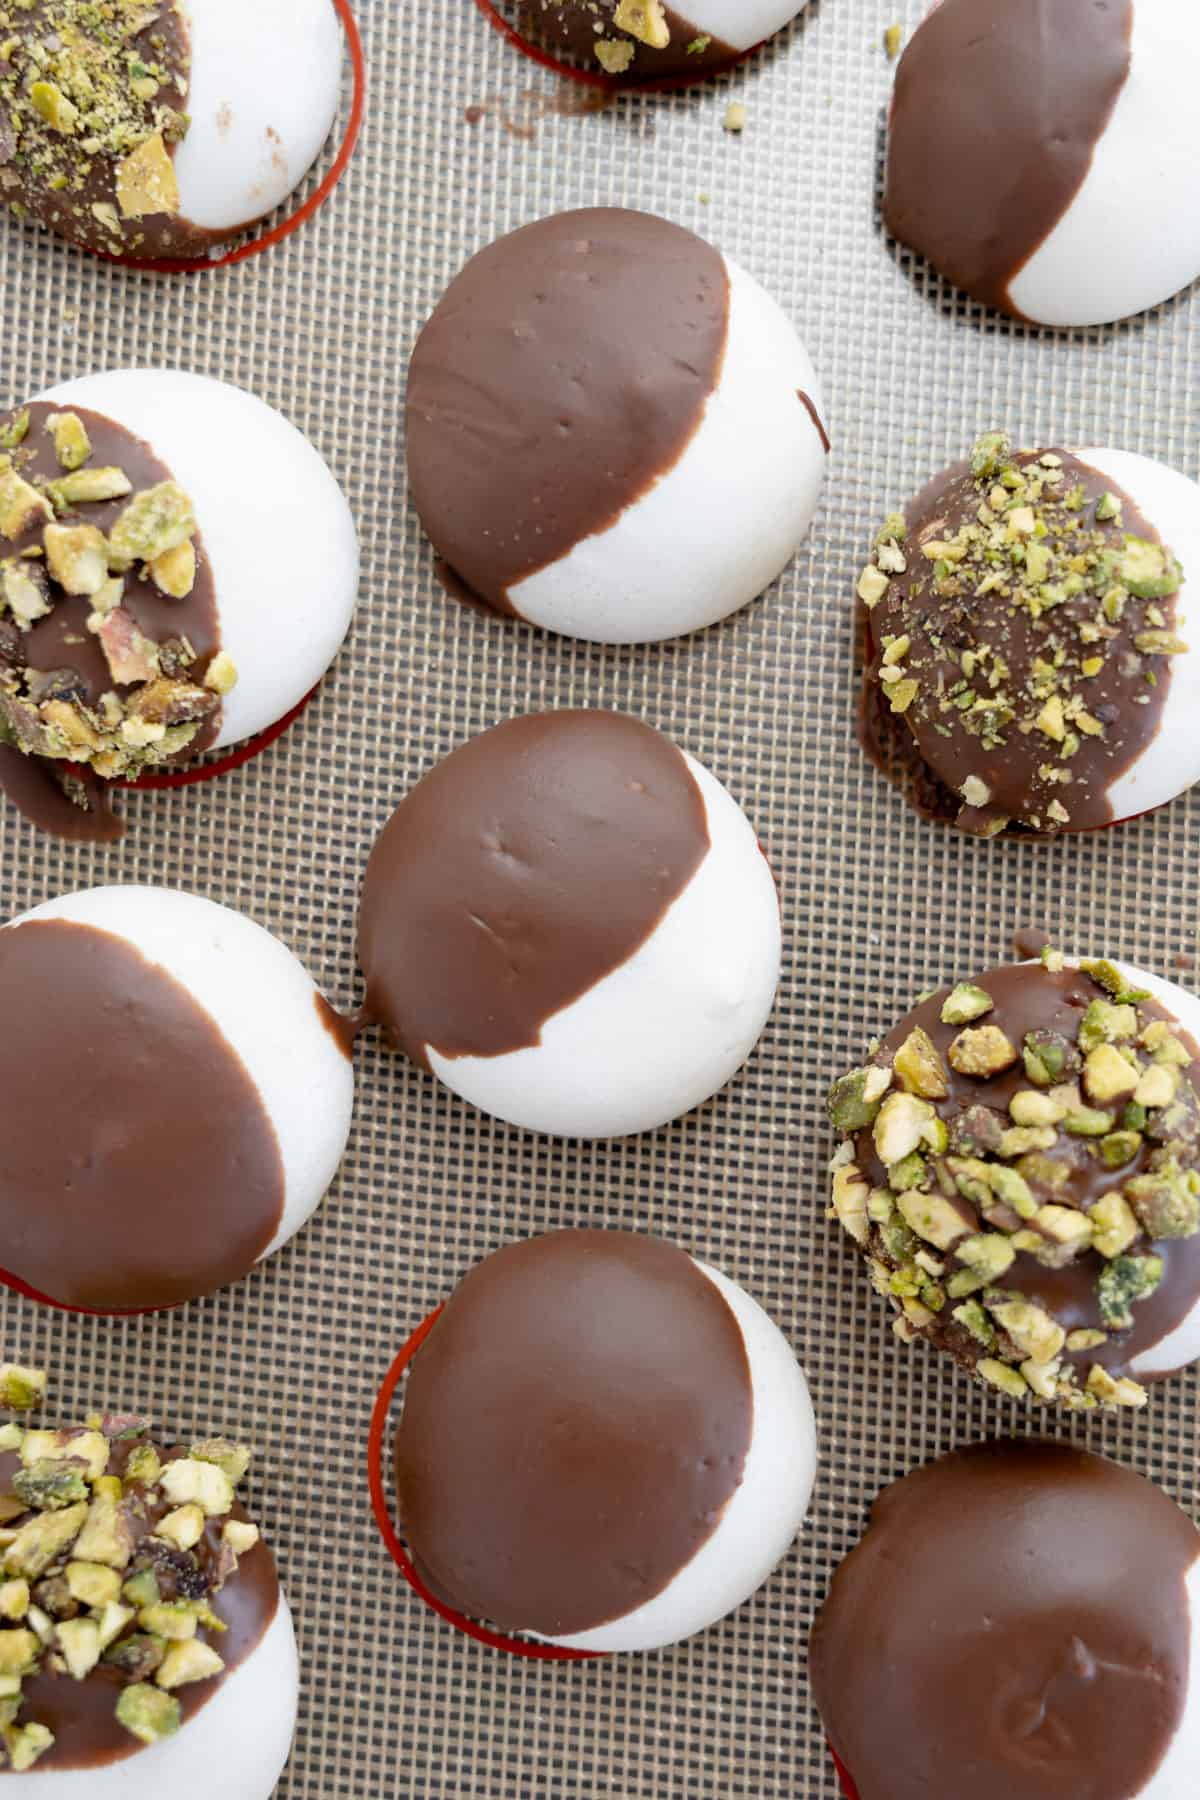 aquafaba cookies dipped into chocolate and pistachio